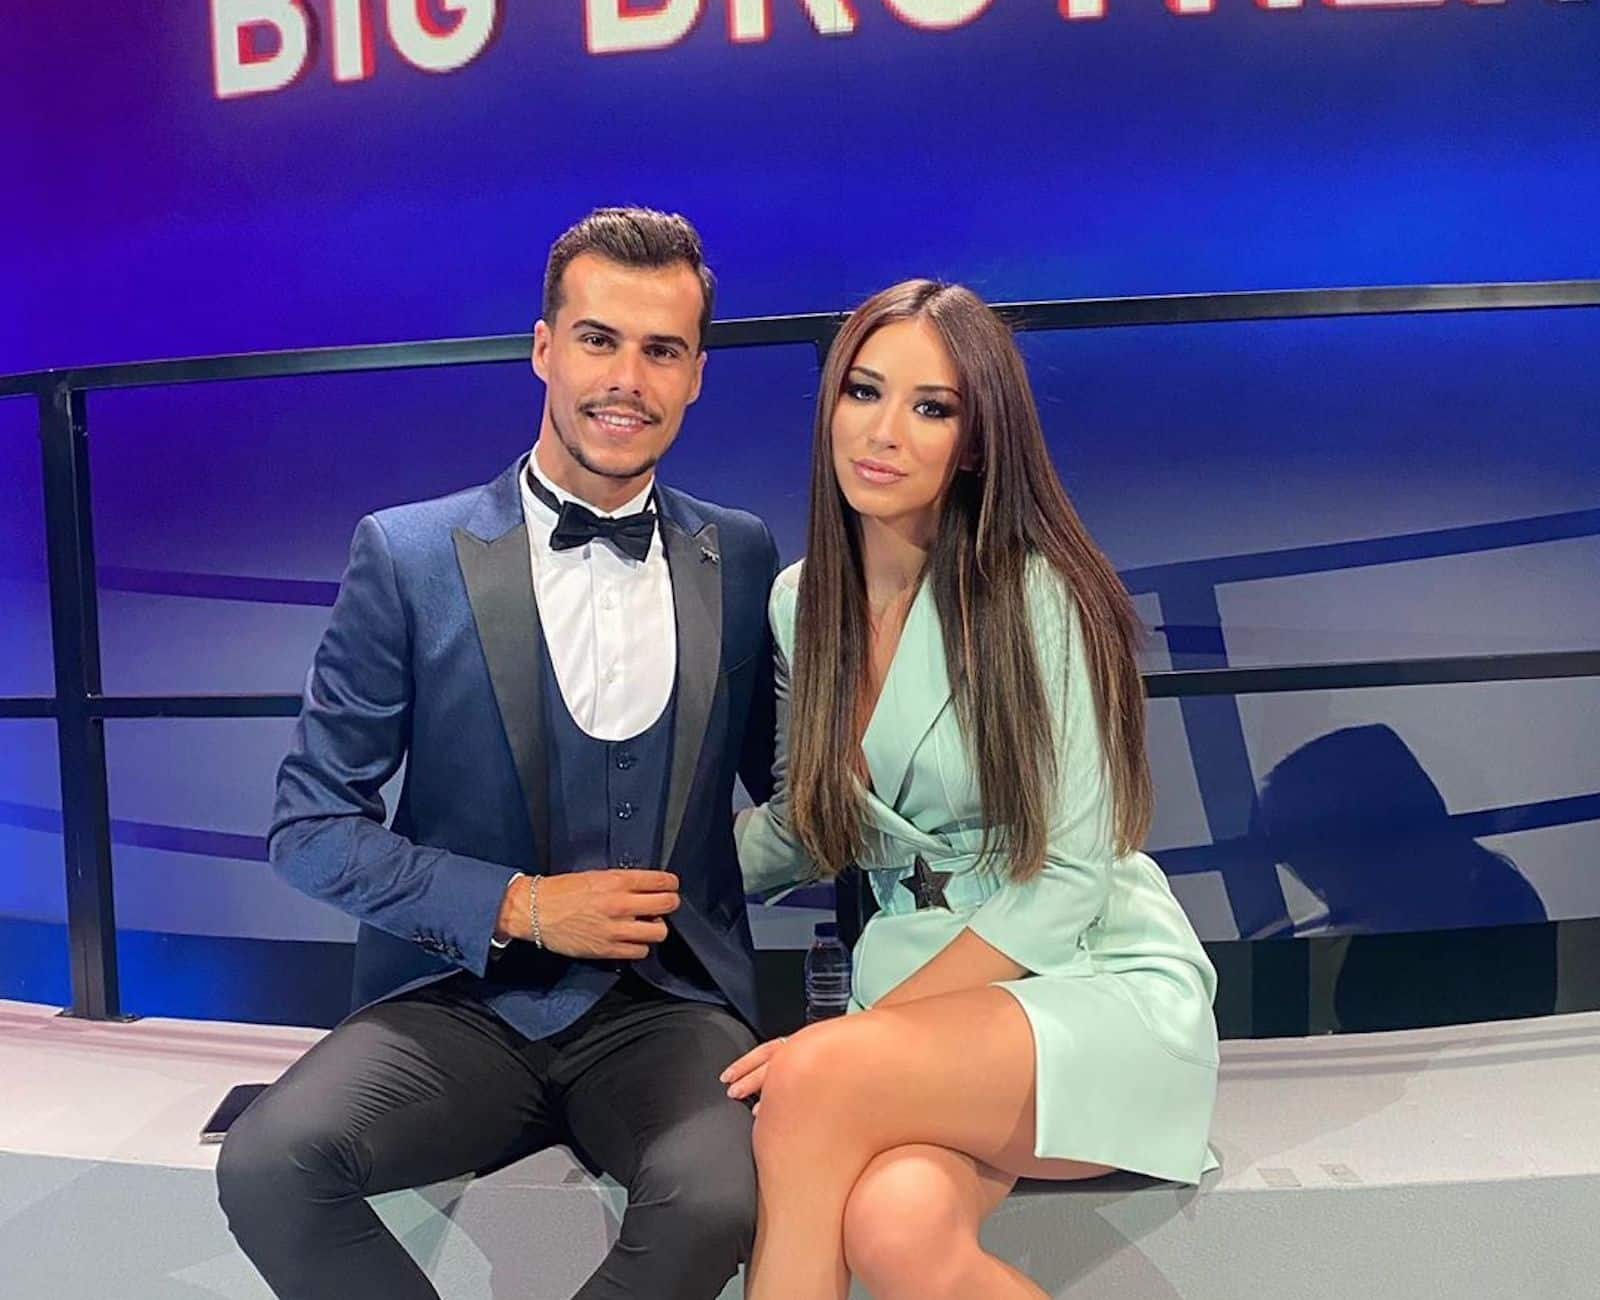 jessica-pedro-alves-big-brother-gala-final